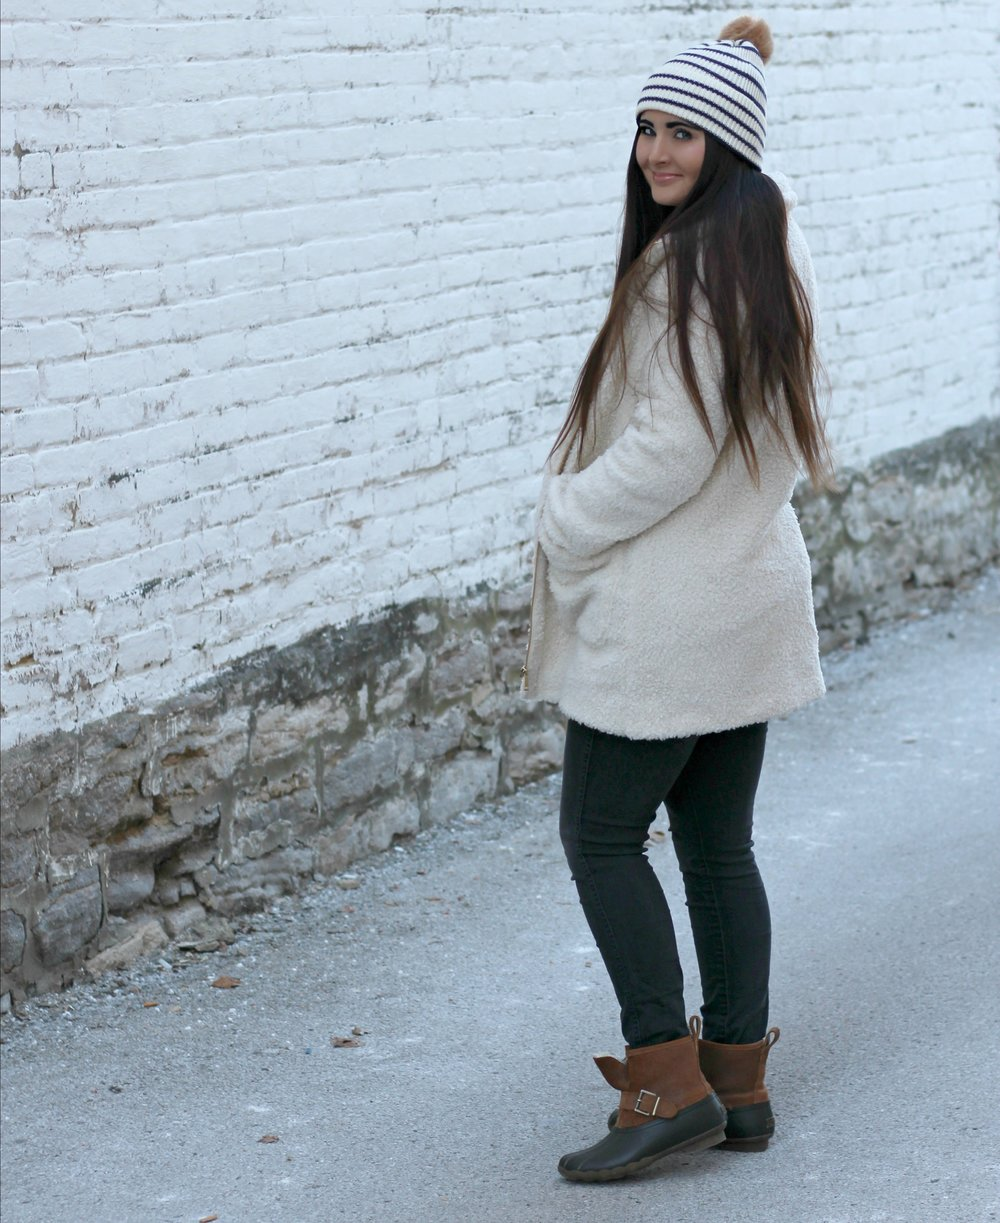 Sherpa Jacket     |      Hat    |     Denim     |     Boots      |     Sweater